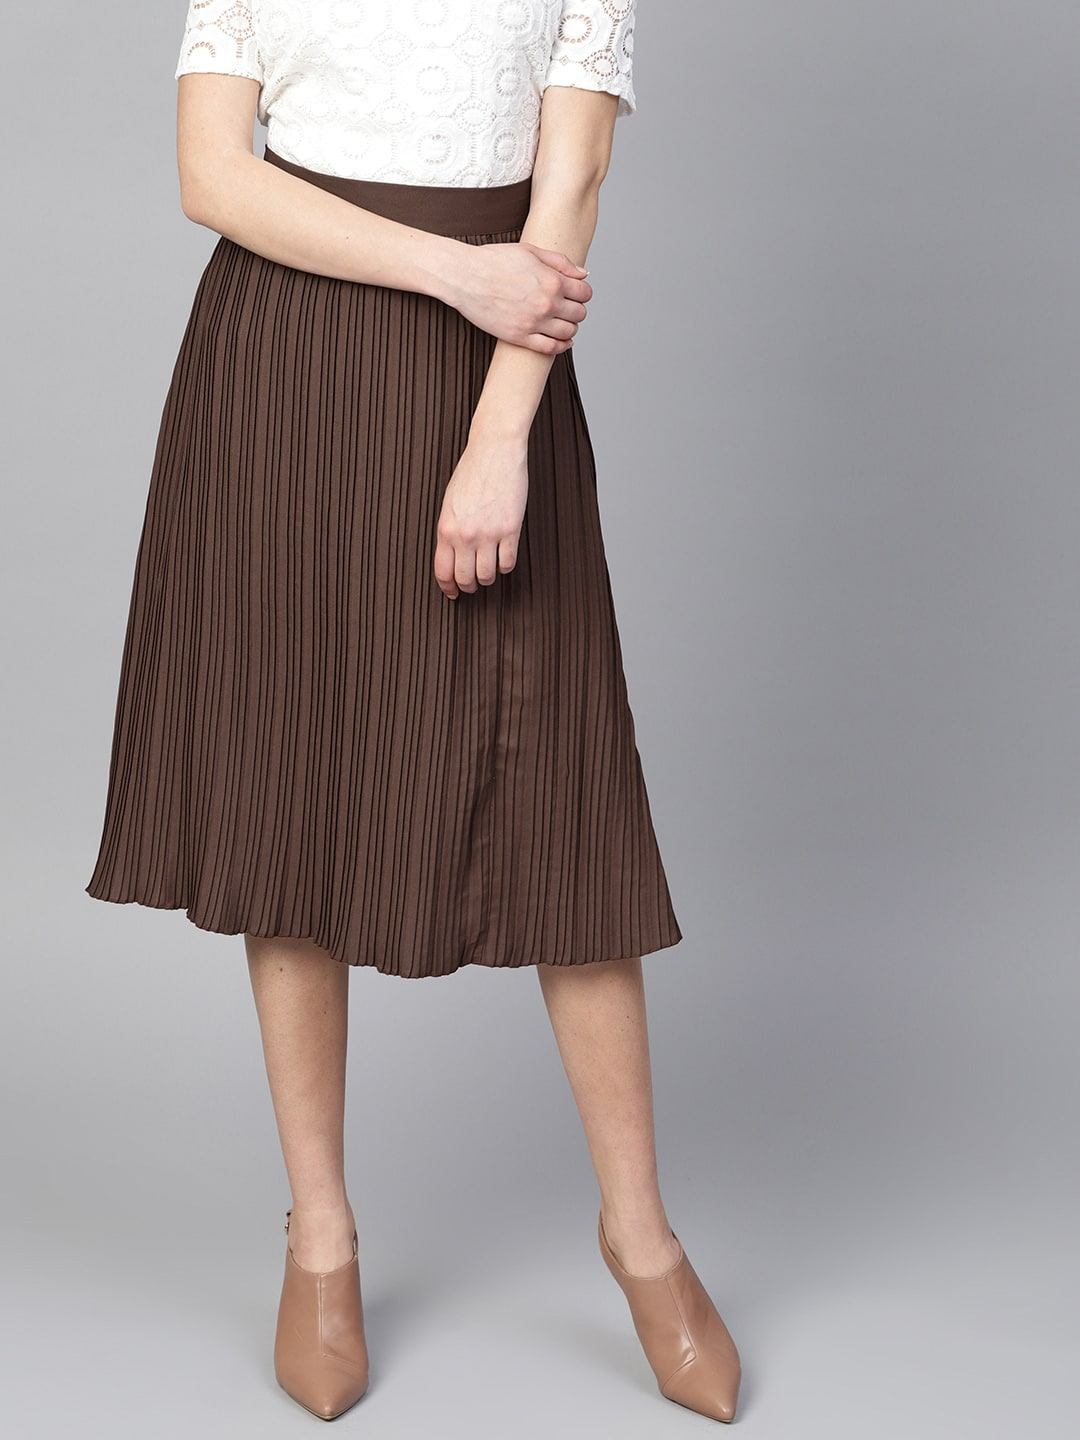 8810a3e5e9 Buy Marks & Spencer Women Grey Melange Solid Accordion Pleated A ...